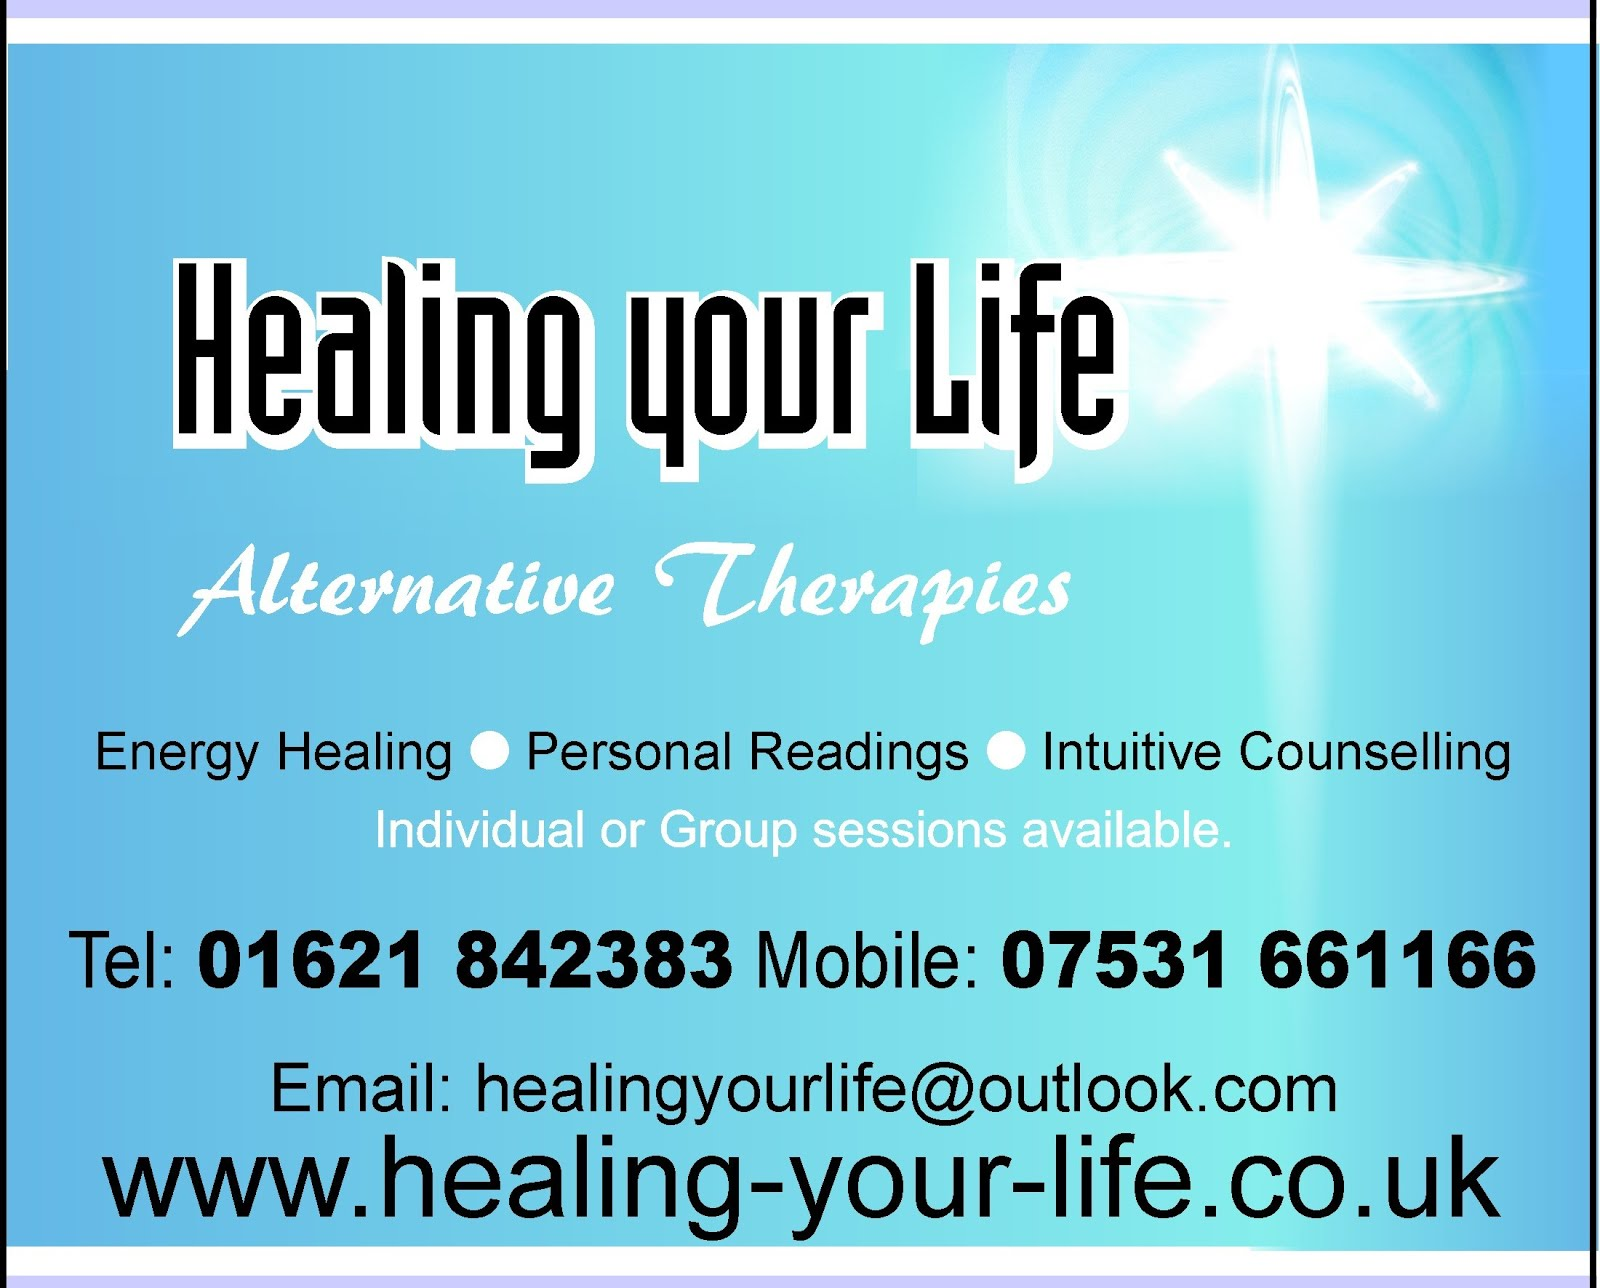 Healing-Your-Life